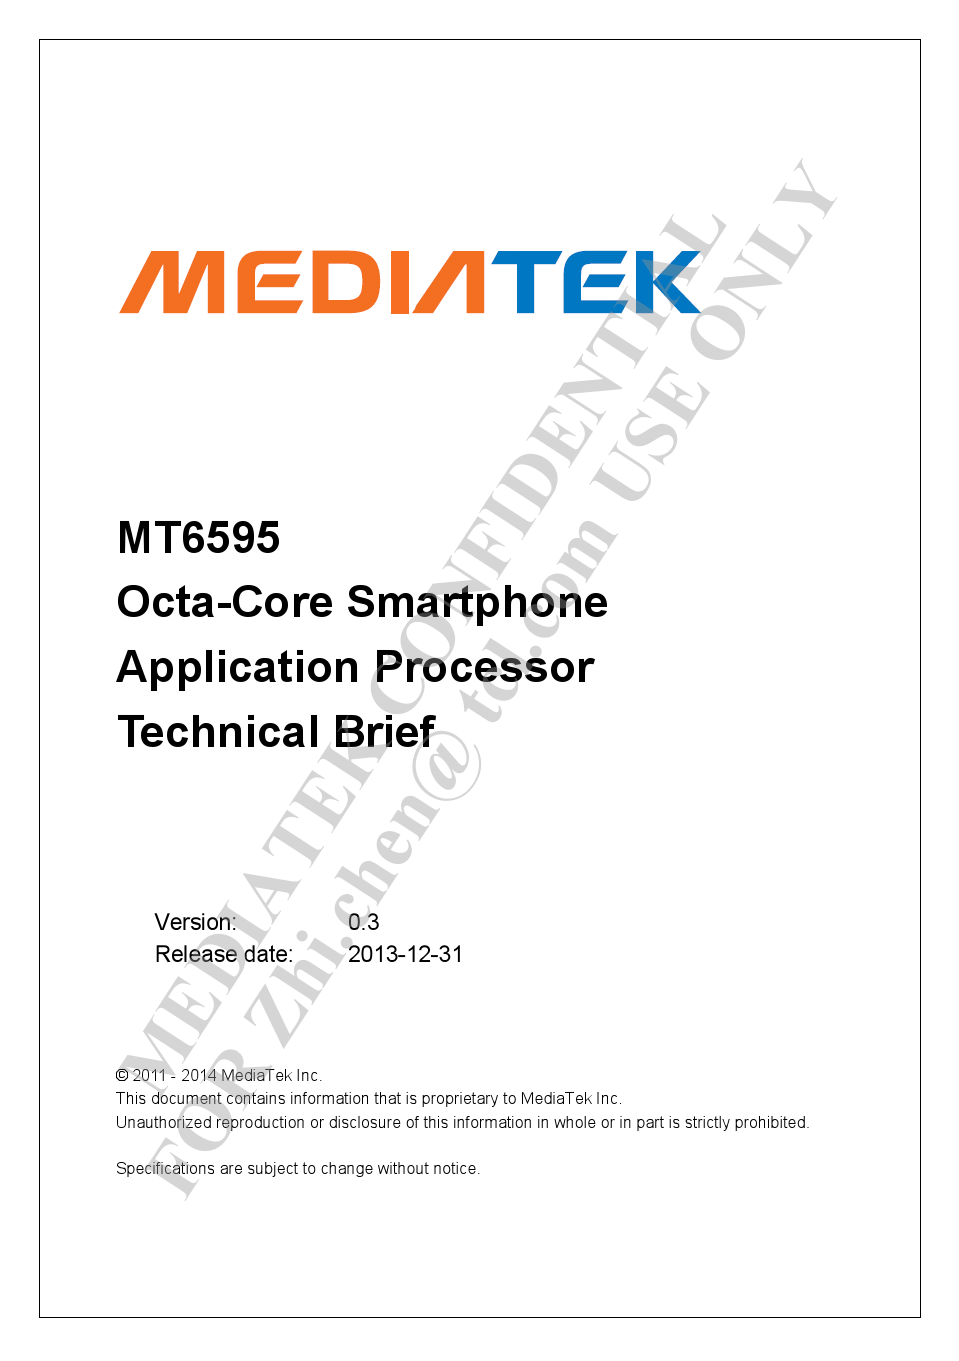 MT6595 Datasheet Brief